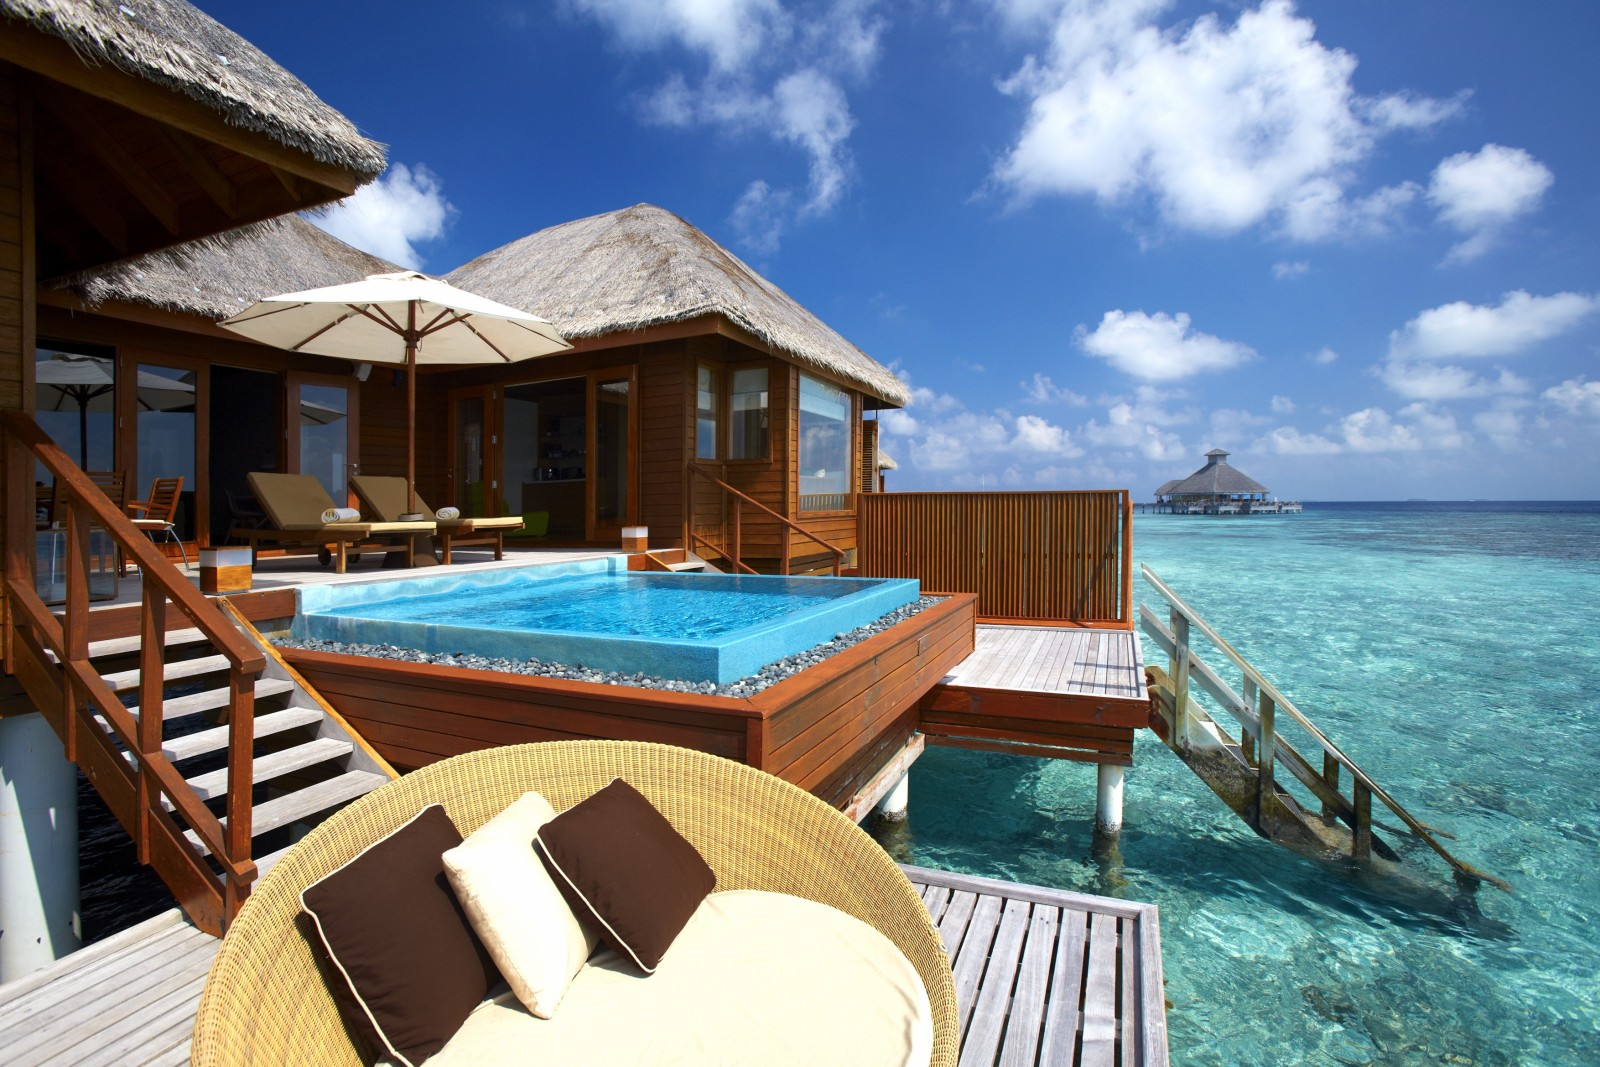 Maldives Honeymoon Packages 2019 2020 All Inclusive